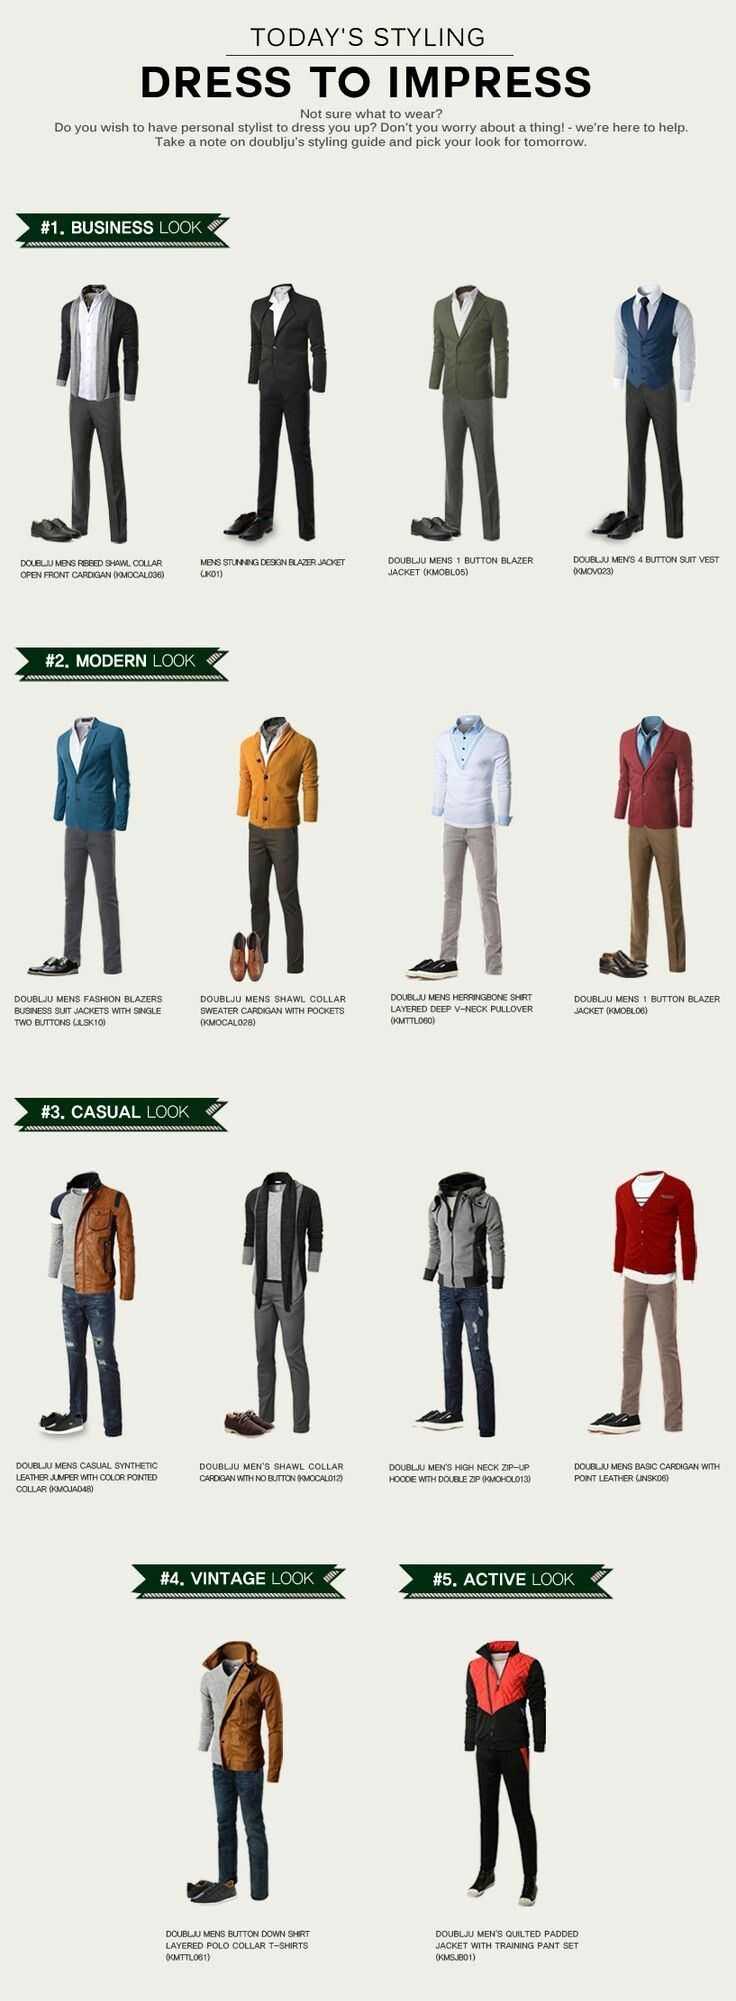 Sport Casual - Referencias. Business Casual - Referencias. Smart Casual - Referencias.